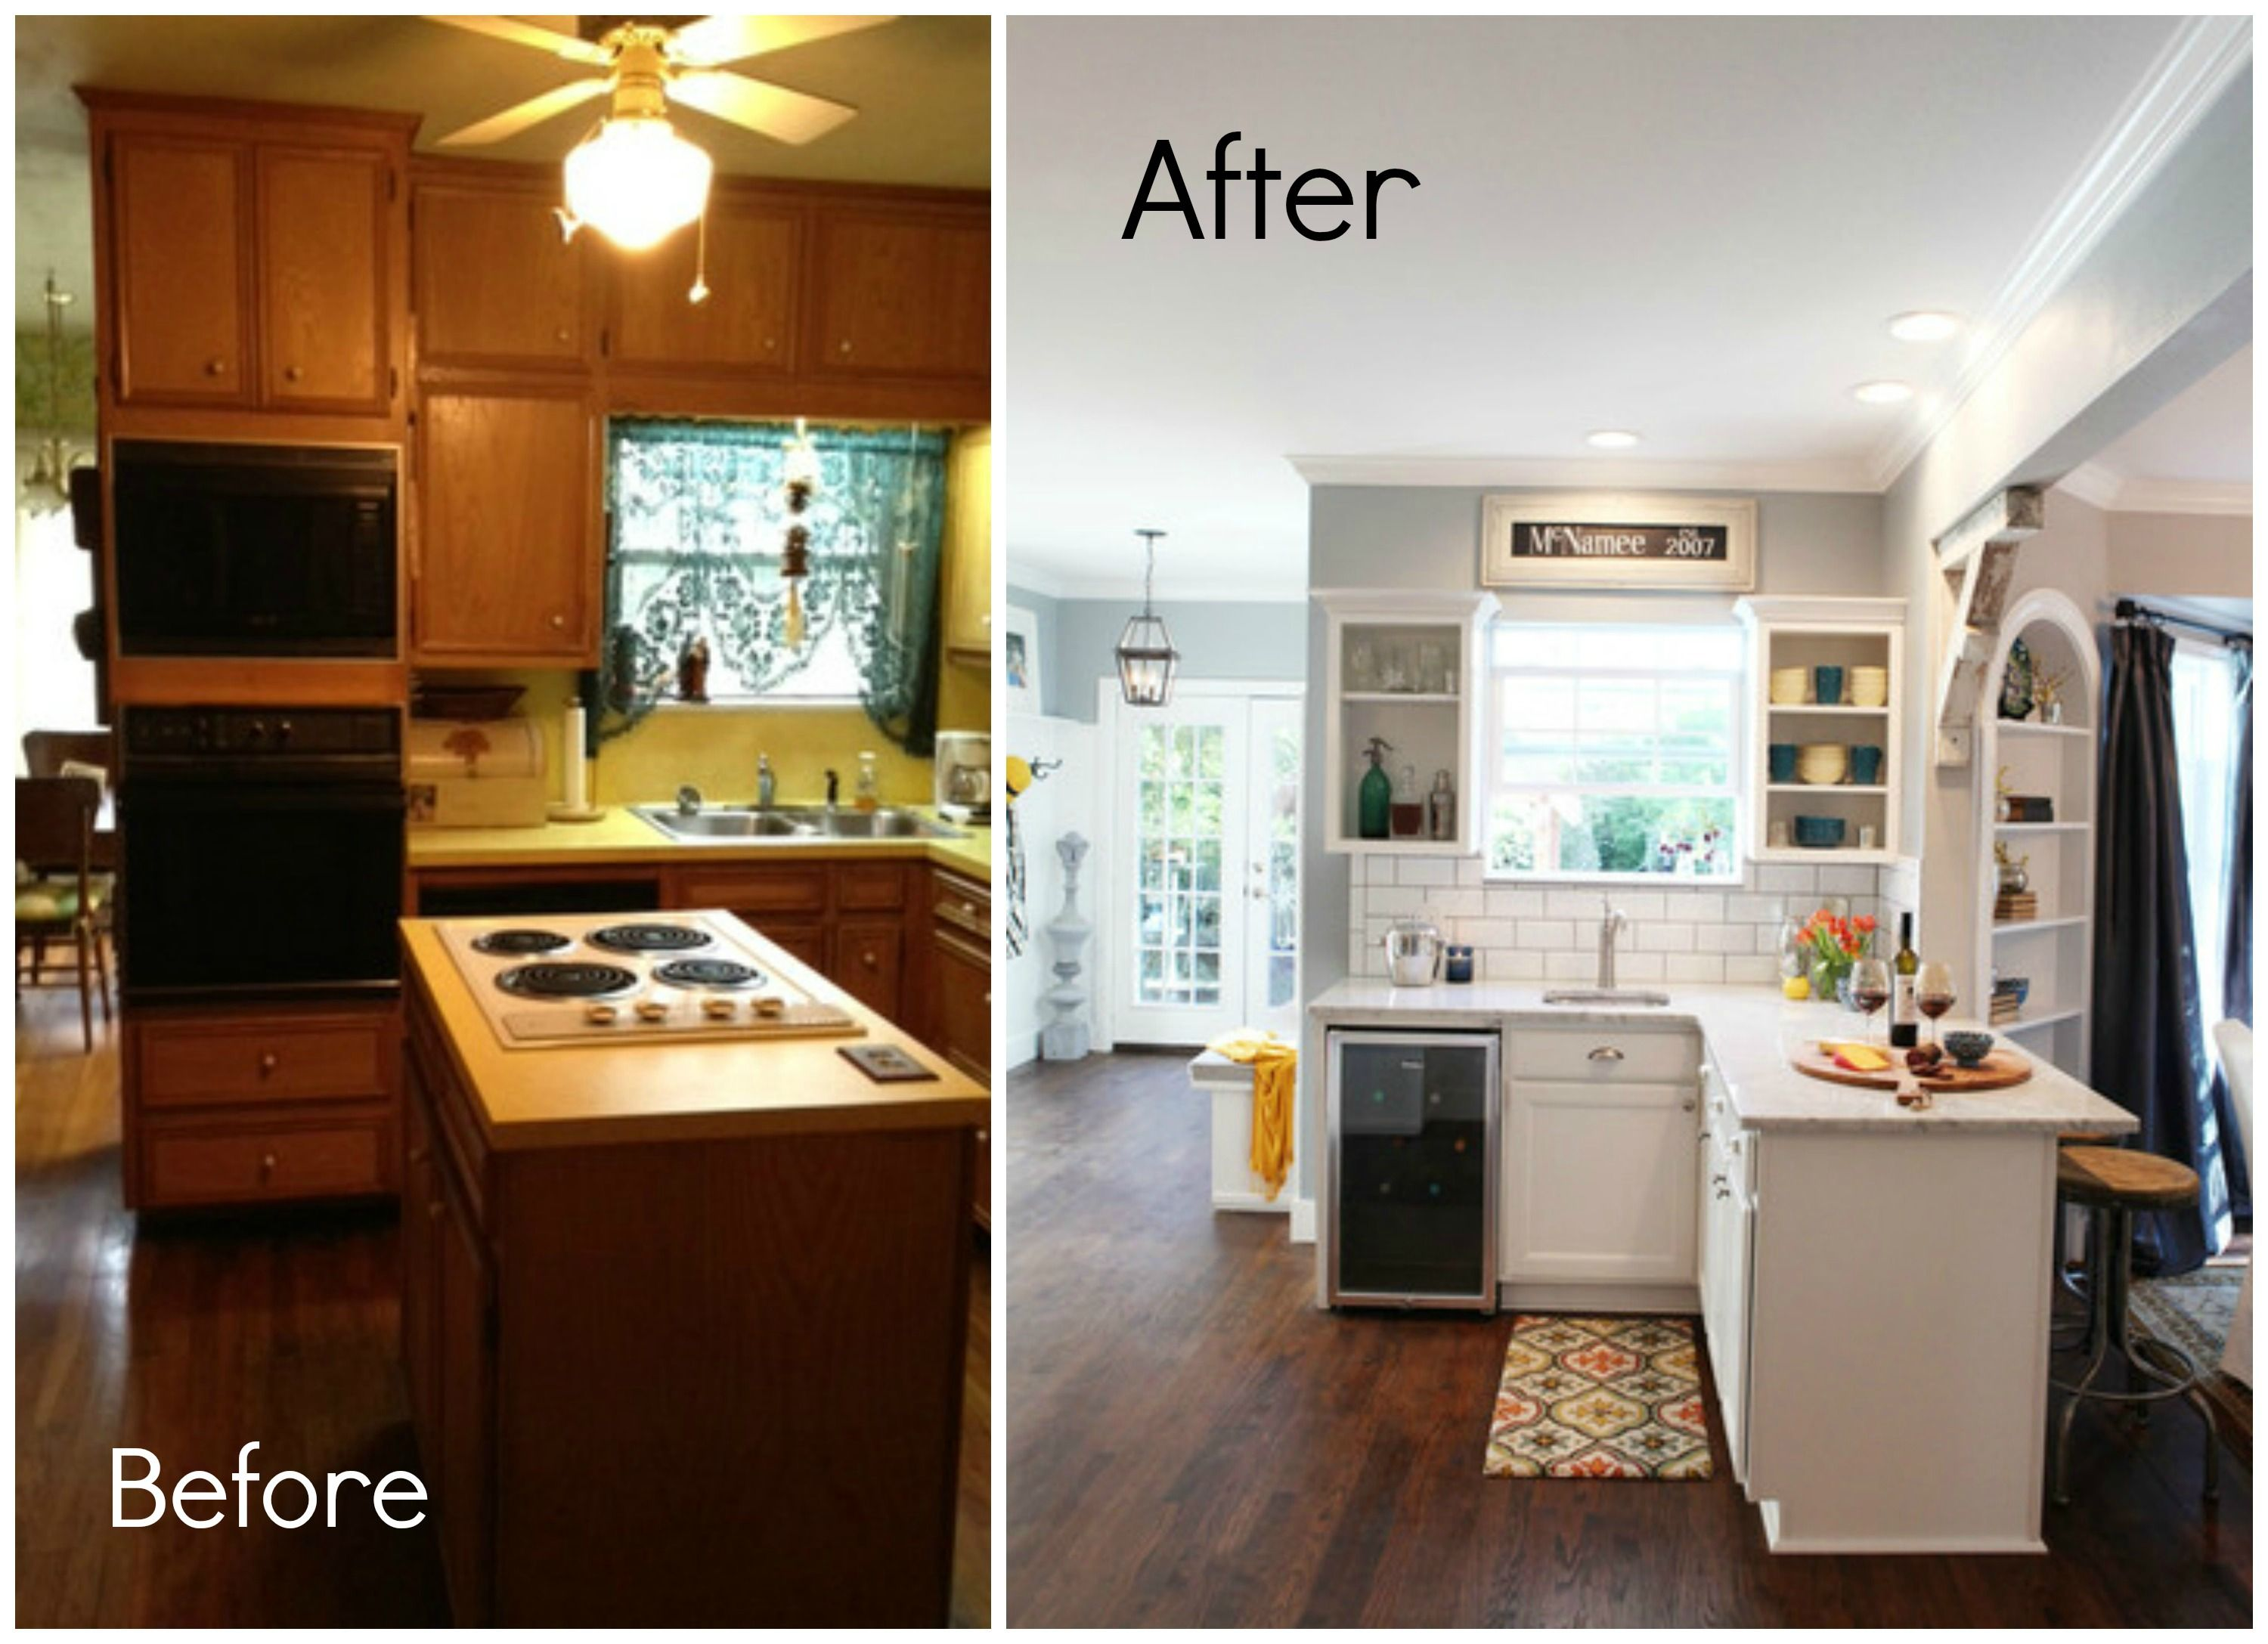 Fixer upper kitchen gallery - Hgtvs Fixer Upper Before And After